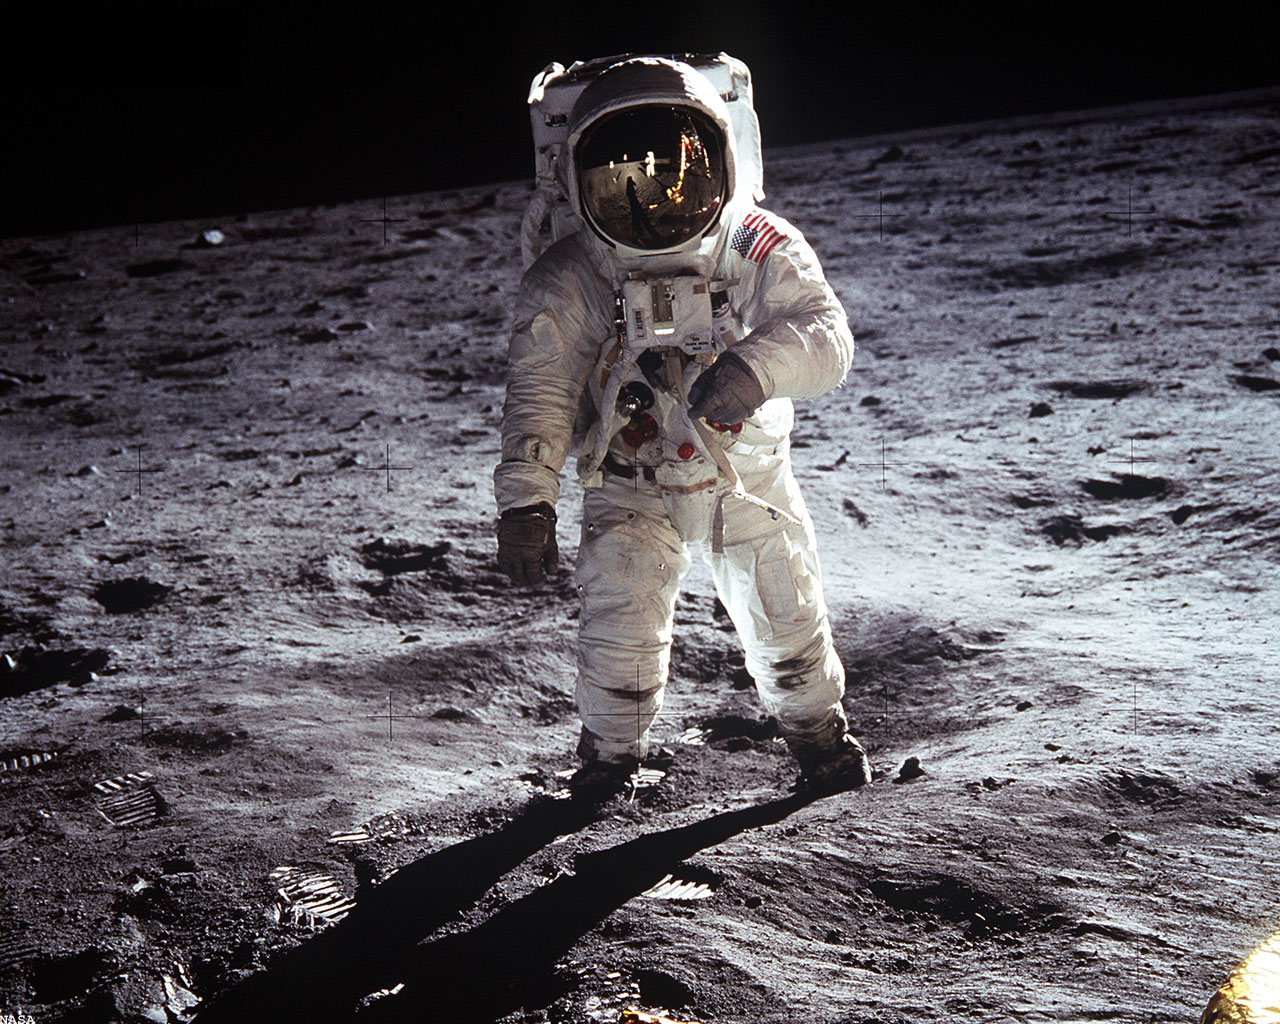 A salute to the moon mission Apollo-11